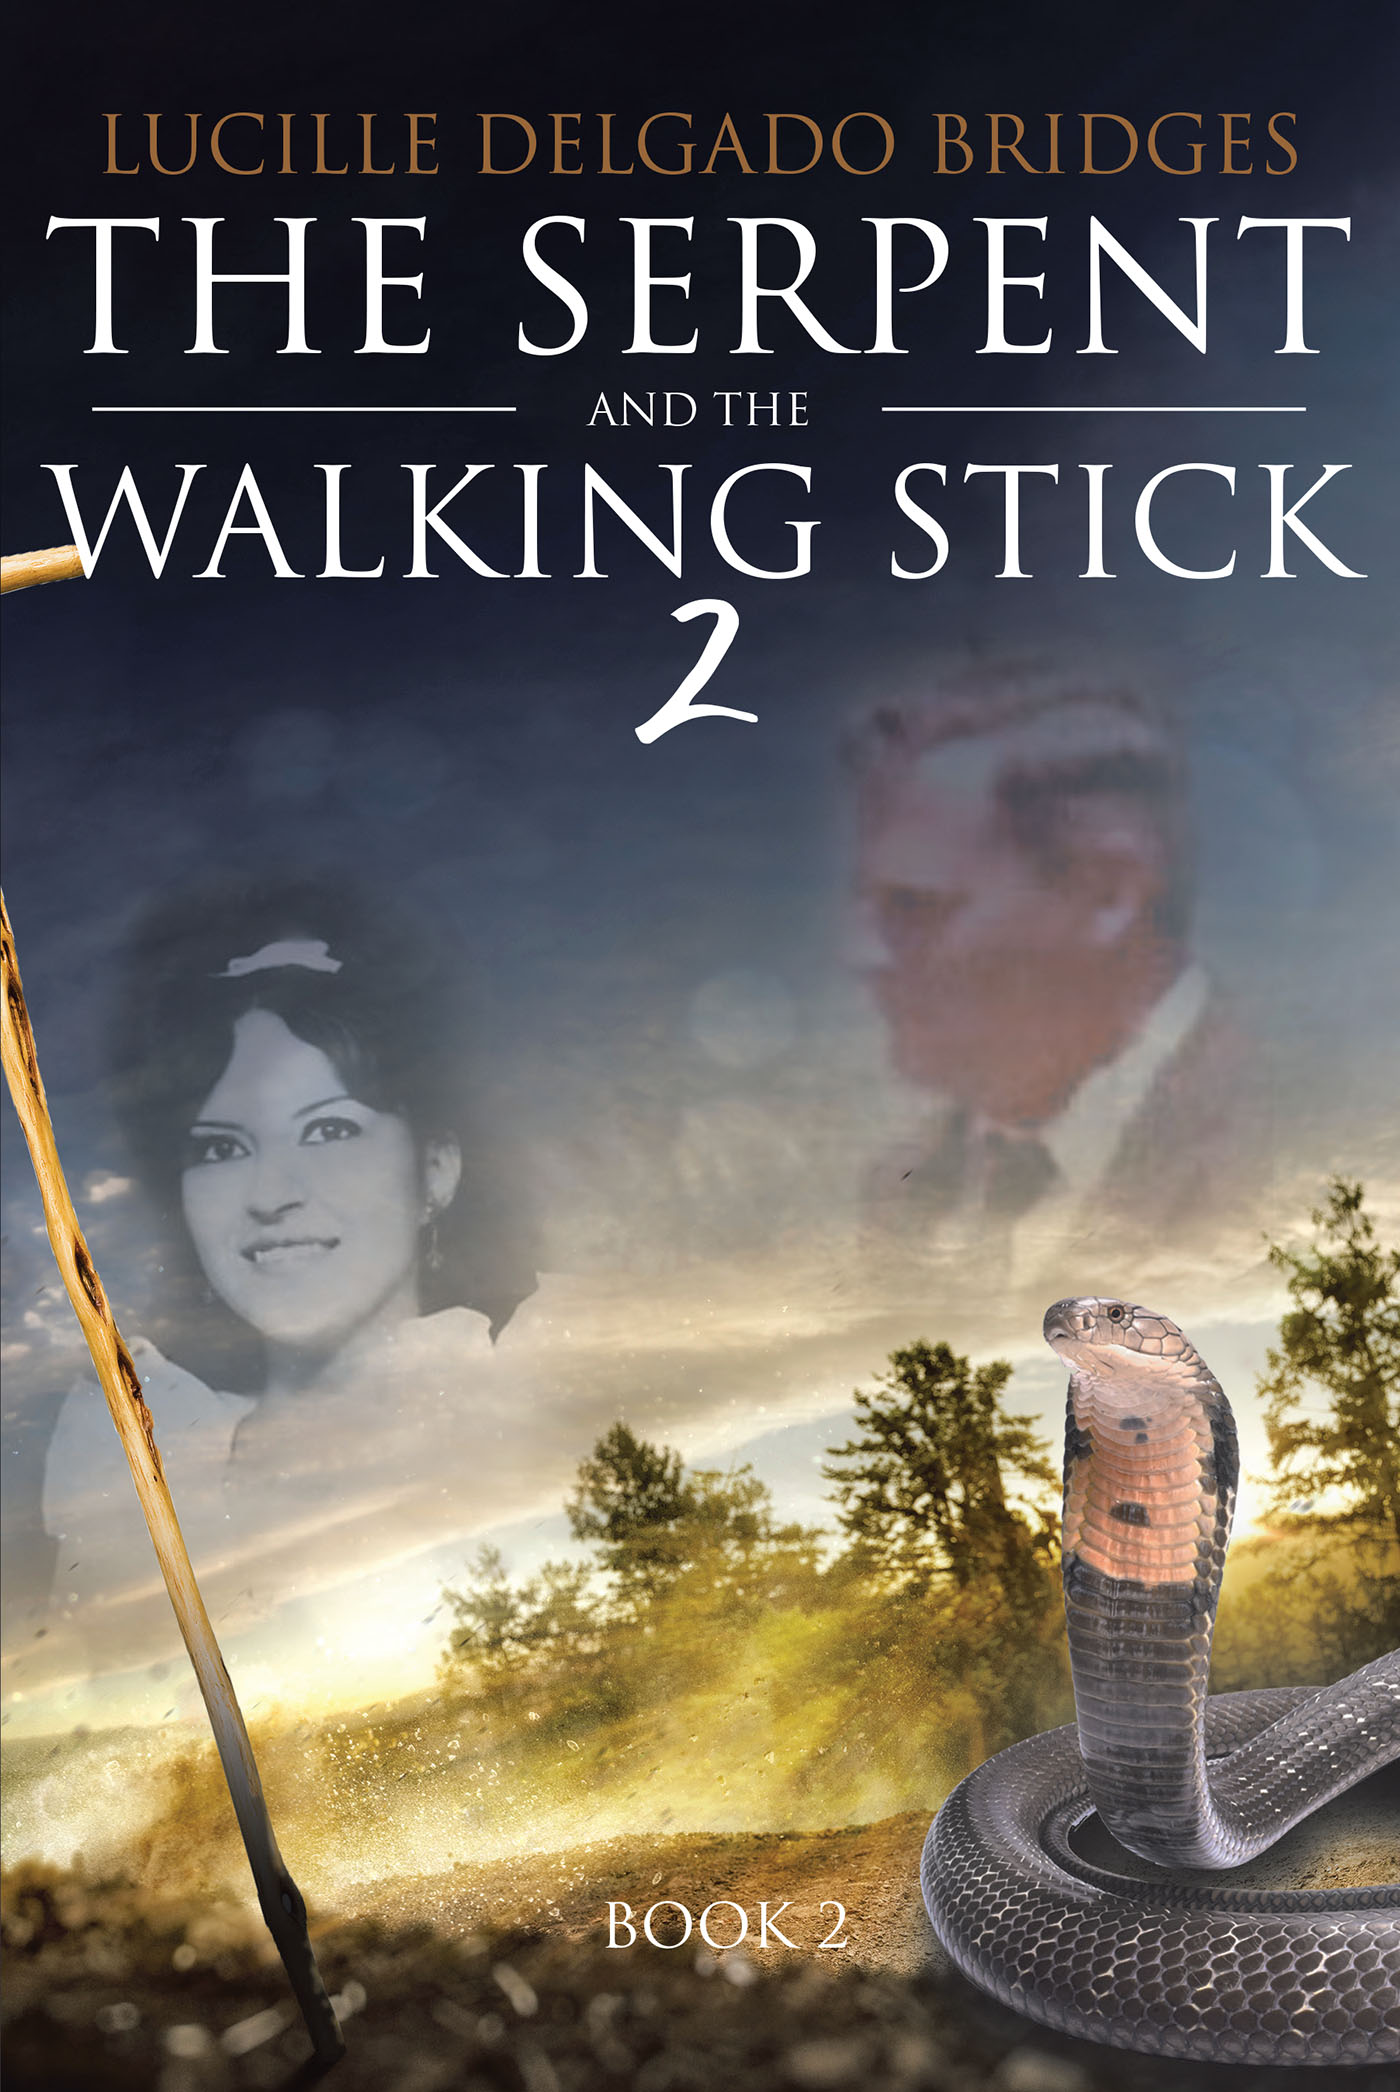 The Serpent and the Walking Stick 2